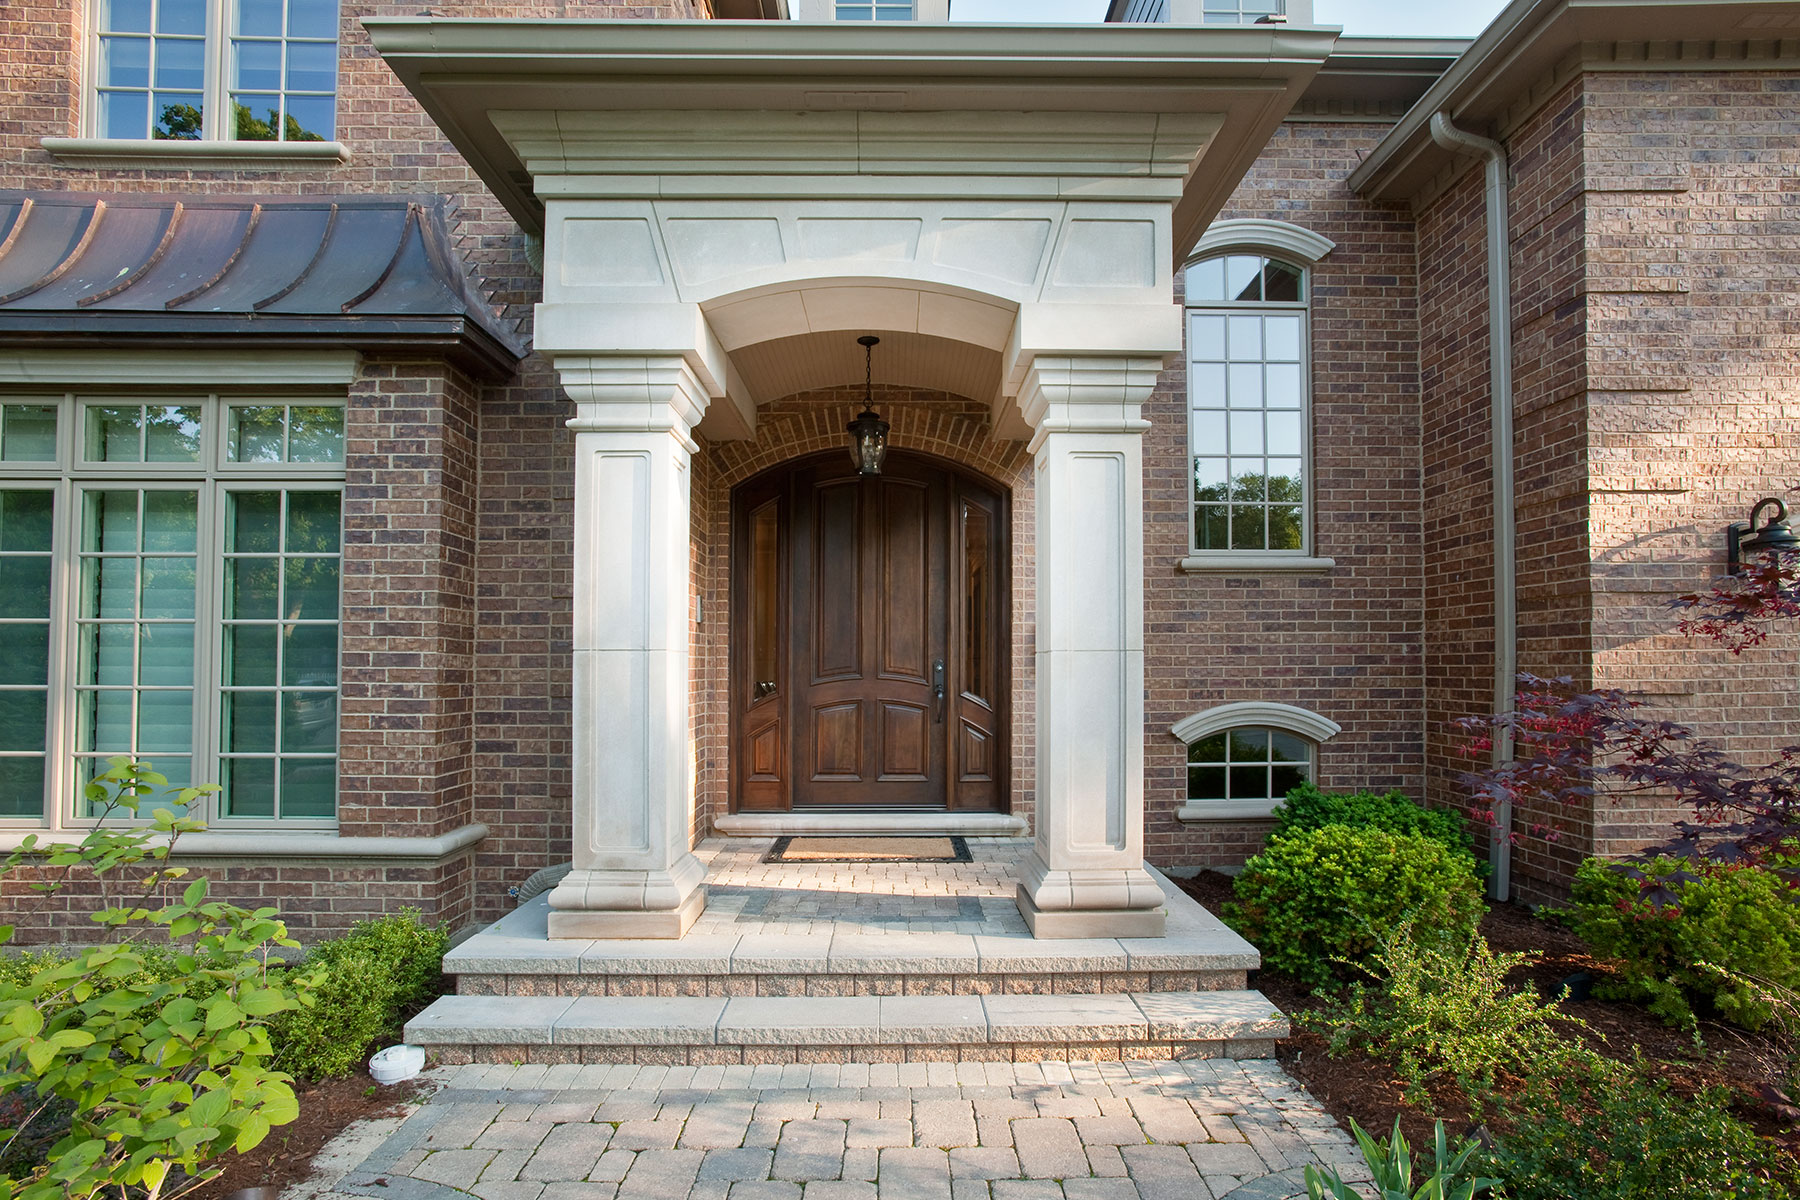 Wood Front Entry Doors in-Stock | 4 Panel Single Solid Mahogany Wood Door with sidelites - Clear Beveled Glass DB-152W 2SL - Glenview Doors - Custom Doors in Chicago